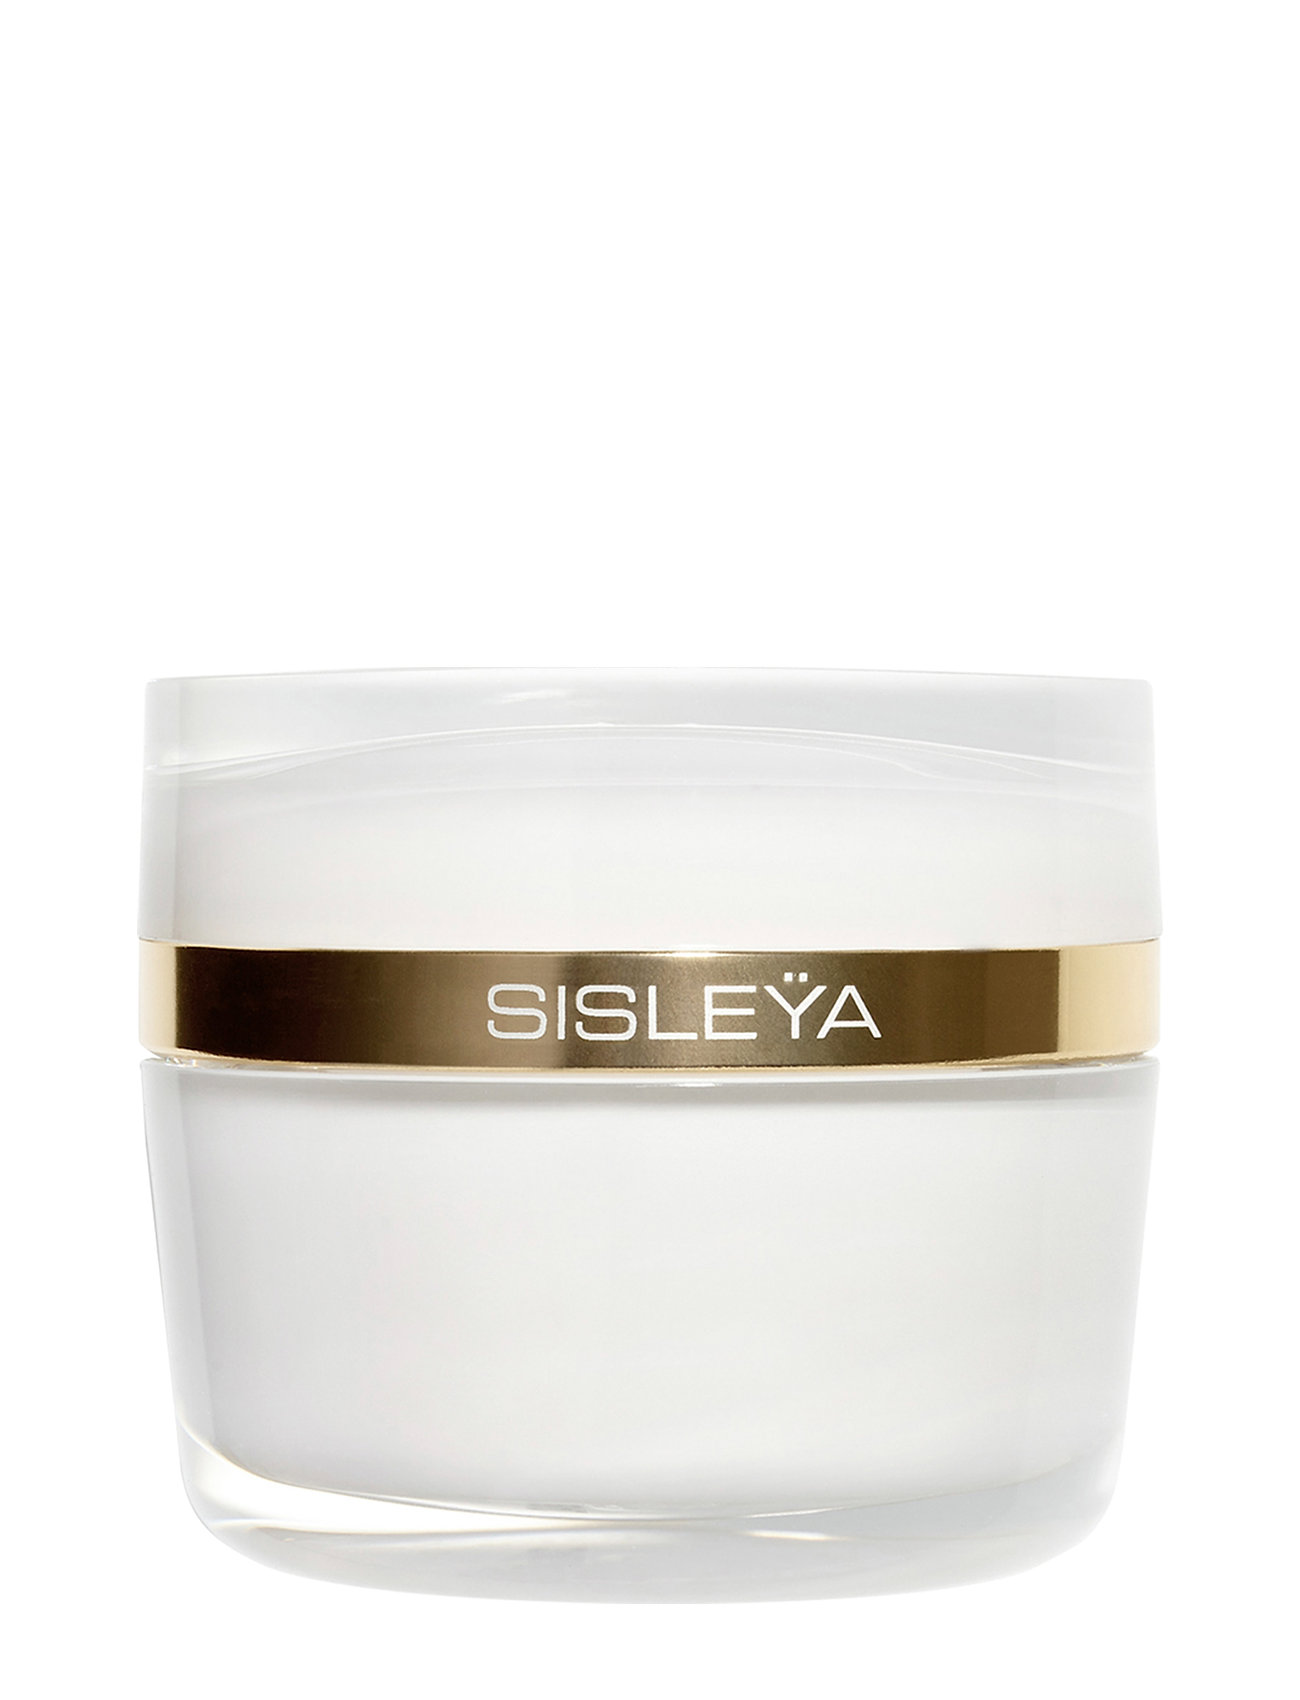 Image of Sisleya L'Integral Extra Riche 50ml Beauty WOMEN Skin Care Face Day Creams Nude Sisley (3067528911)